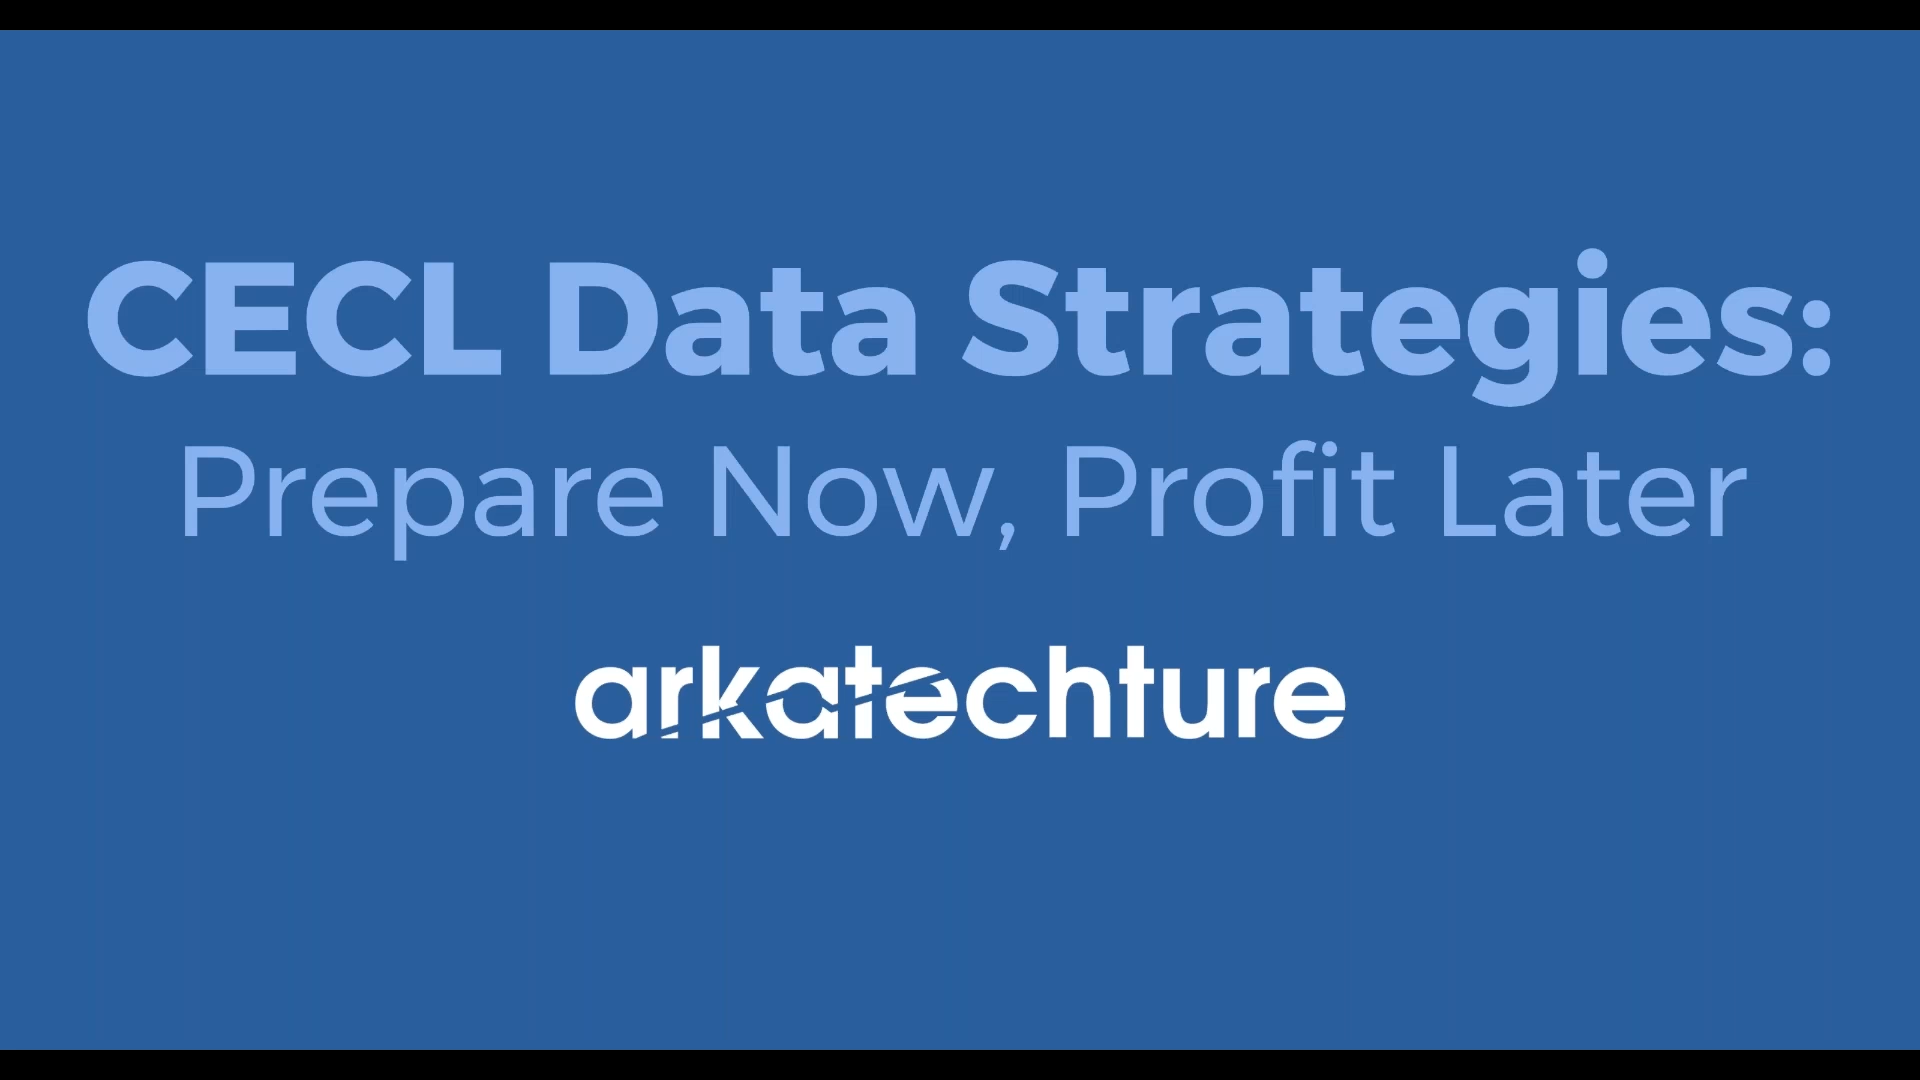 cecl data strategies